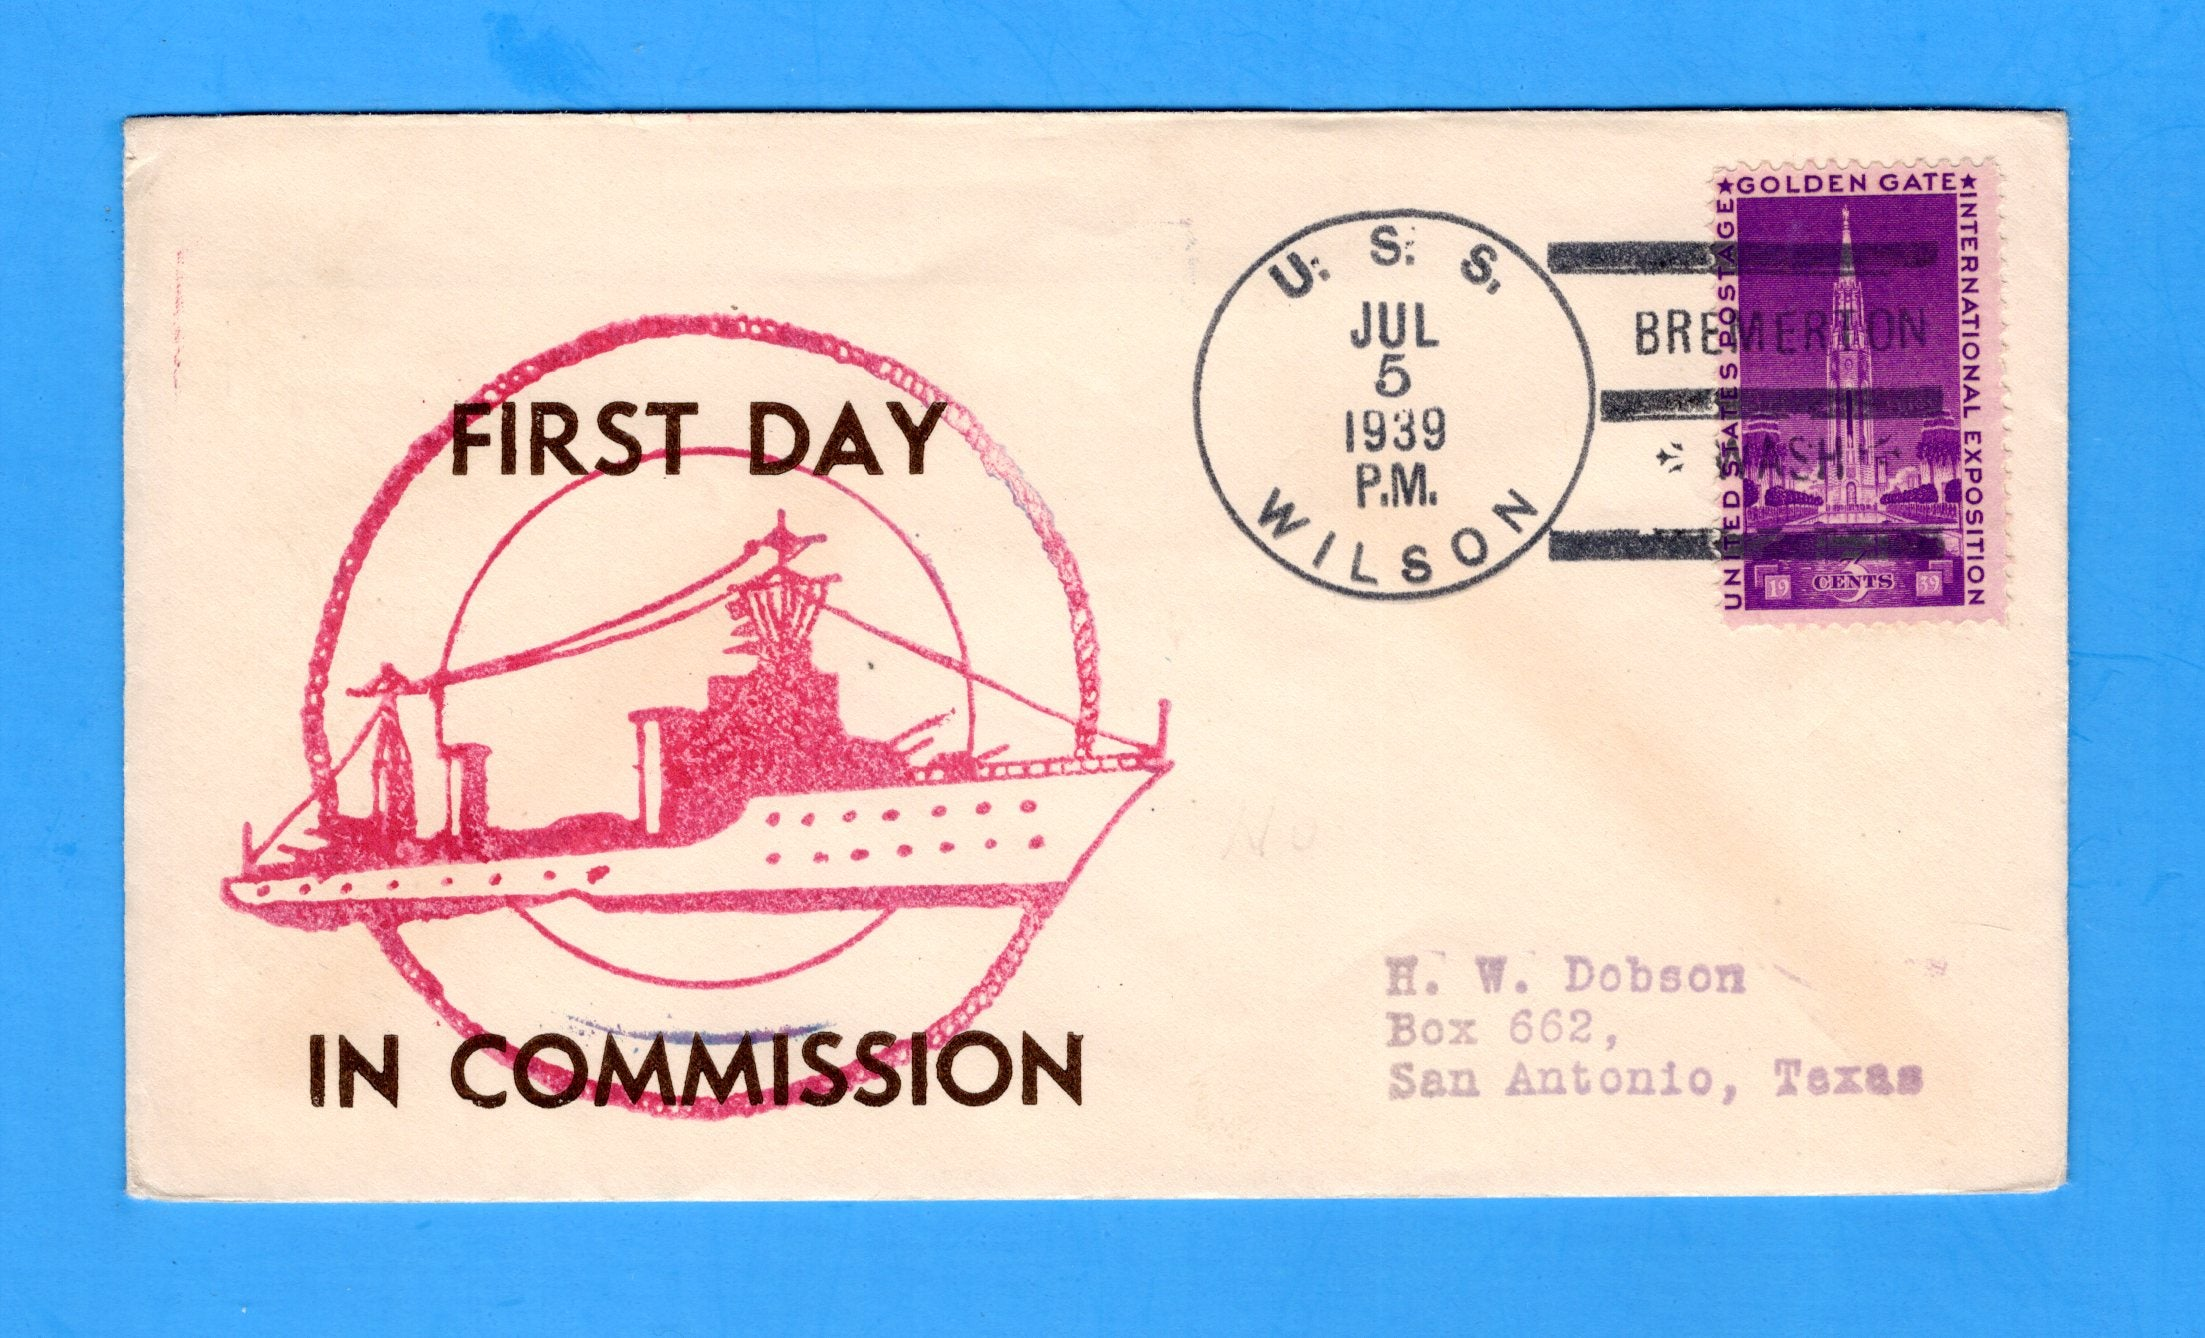 USS Wilson DD-408 Commissioned & FDPS July 5, 1939